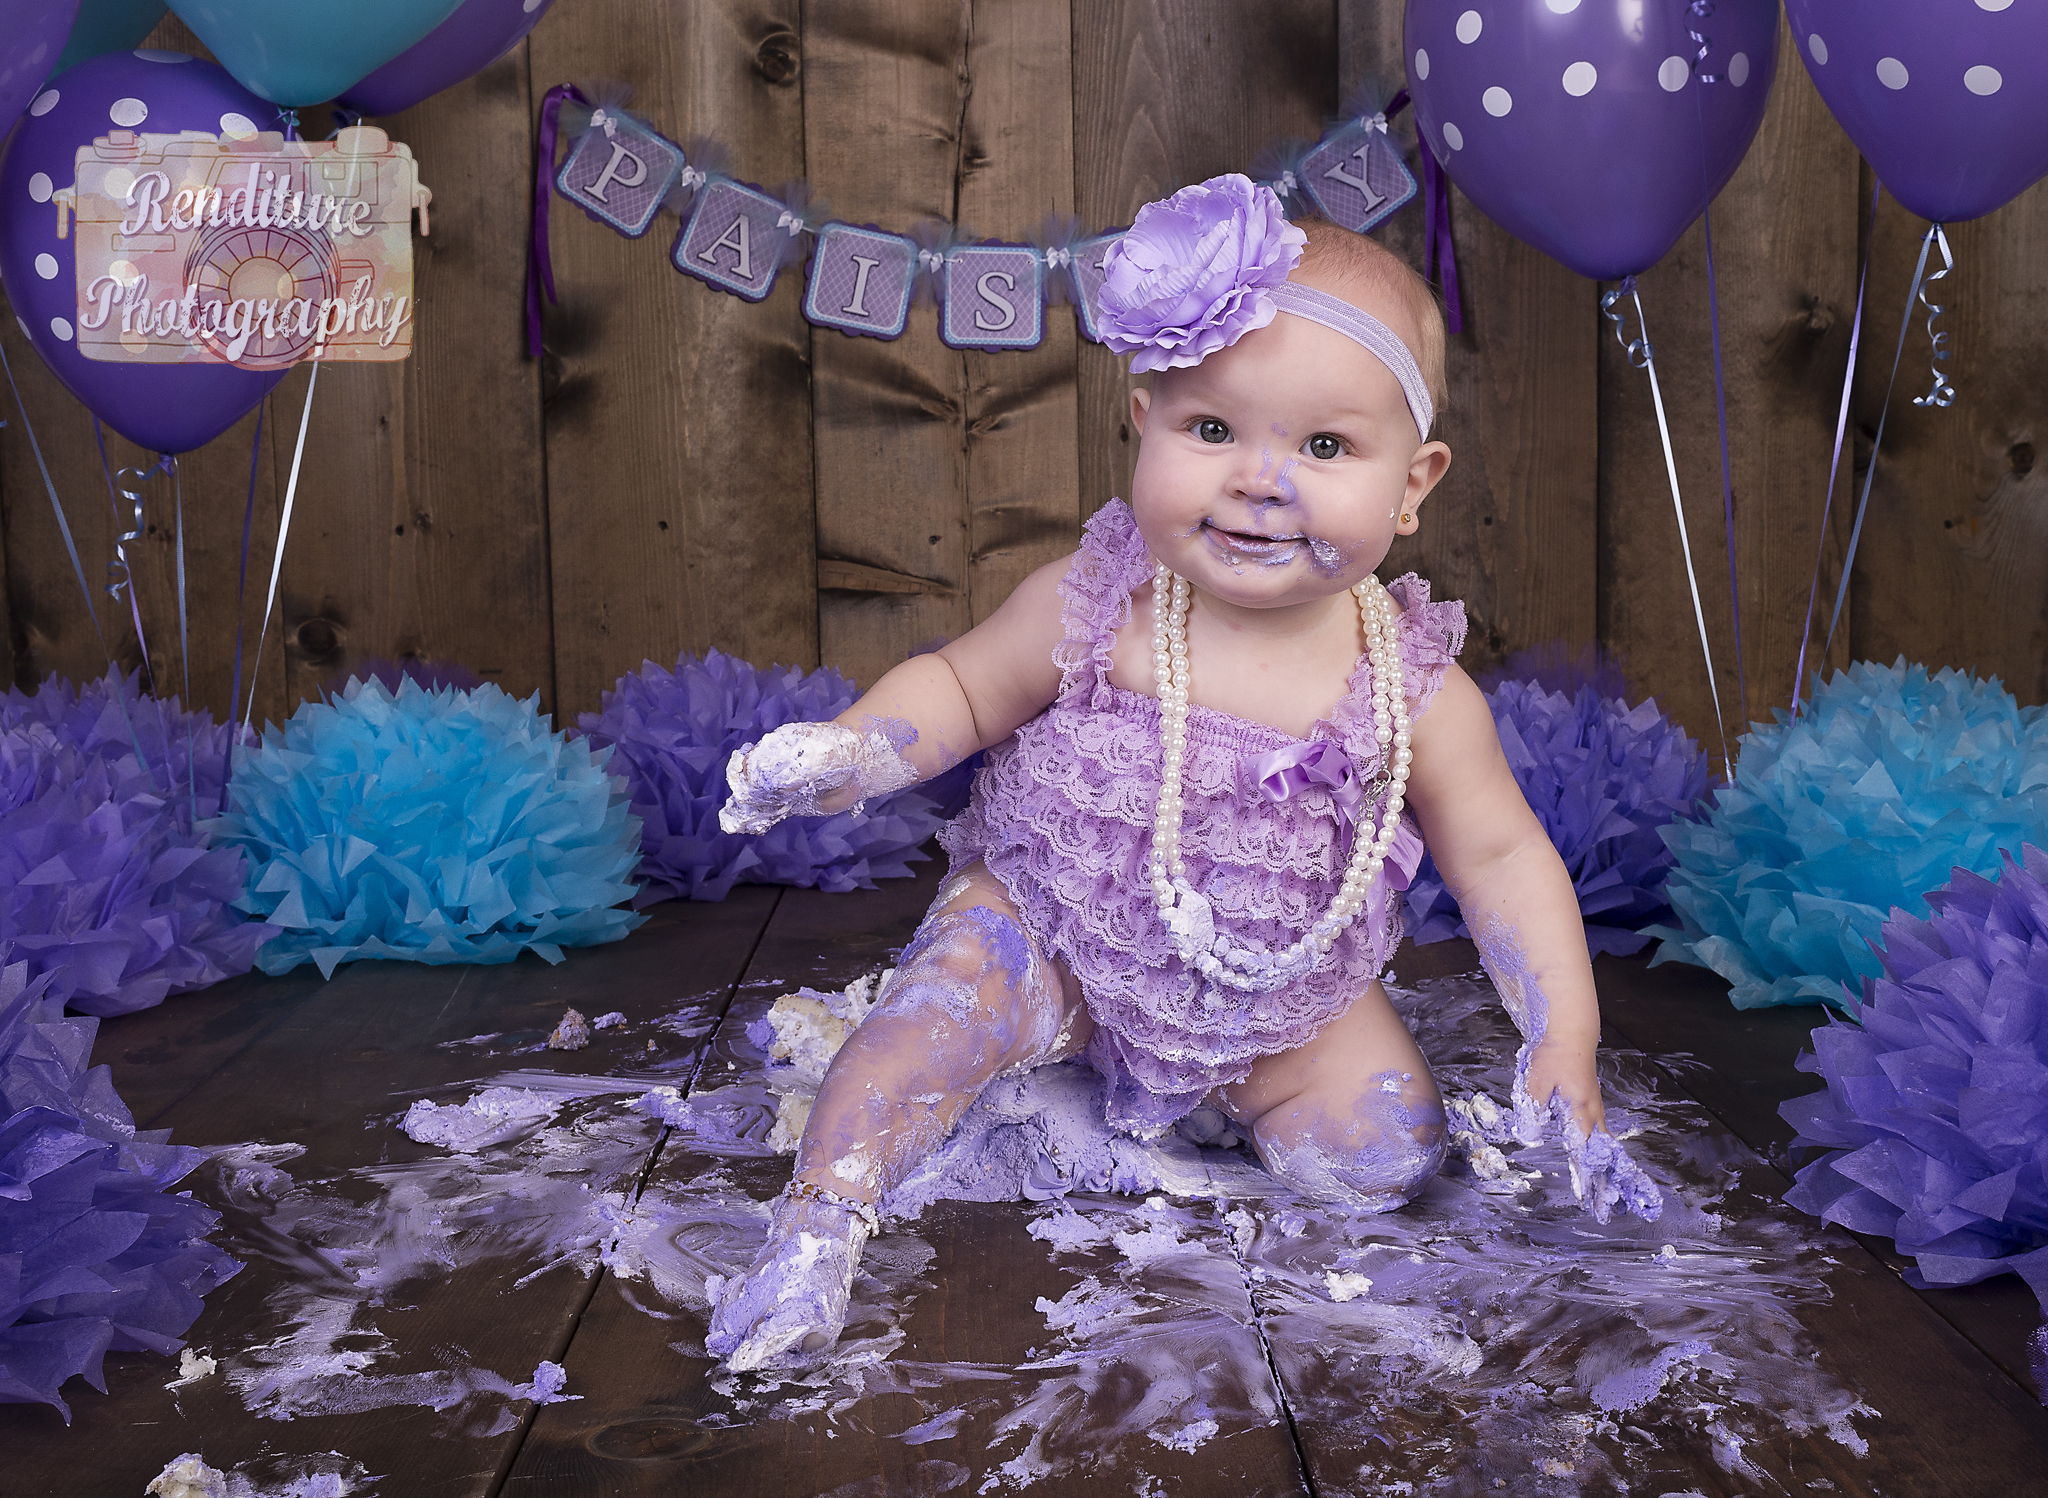 Saskatoon,Cake Smash,1 year,Birthday,Photographer,Baby,Photography,Photographer,Maternity,Pregnancy,Family, Renditure,Child,Infant,Tot,Kid,Photos,Saskatchewan,YXE,SK,Birthday Photographer,Saskatoon Photographer